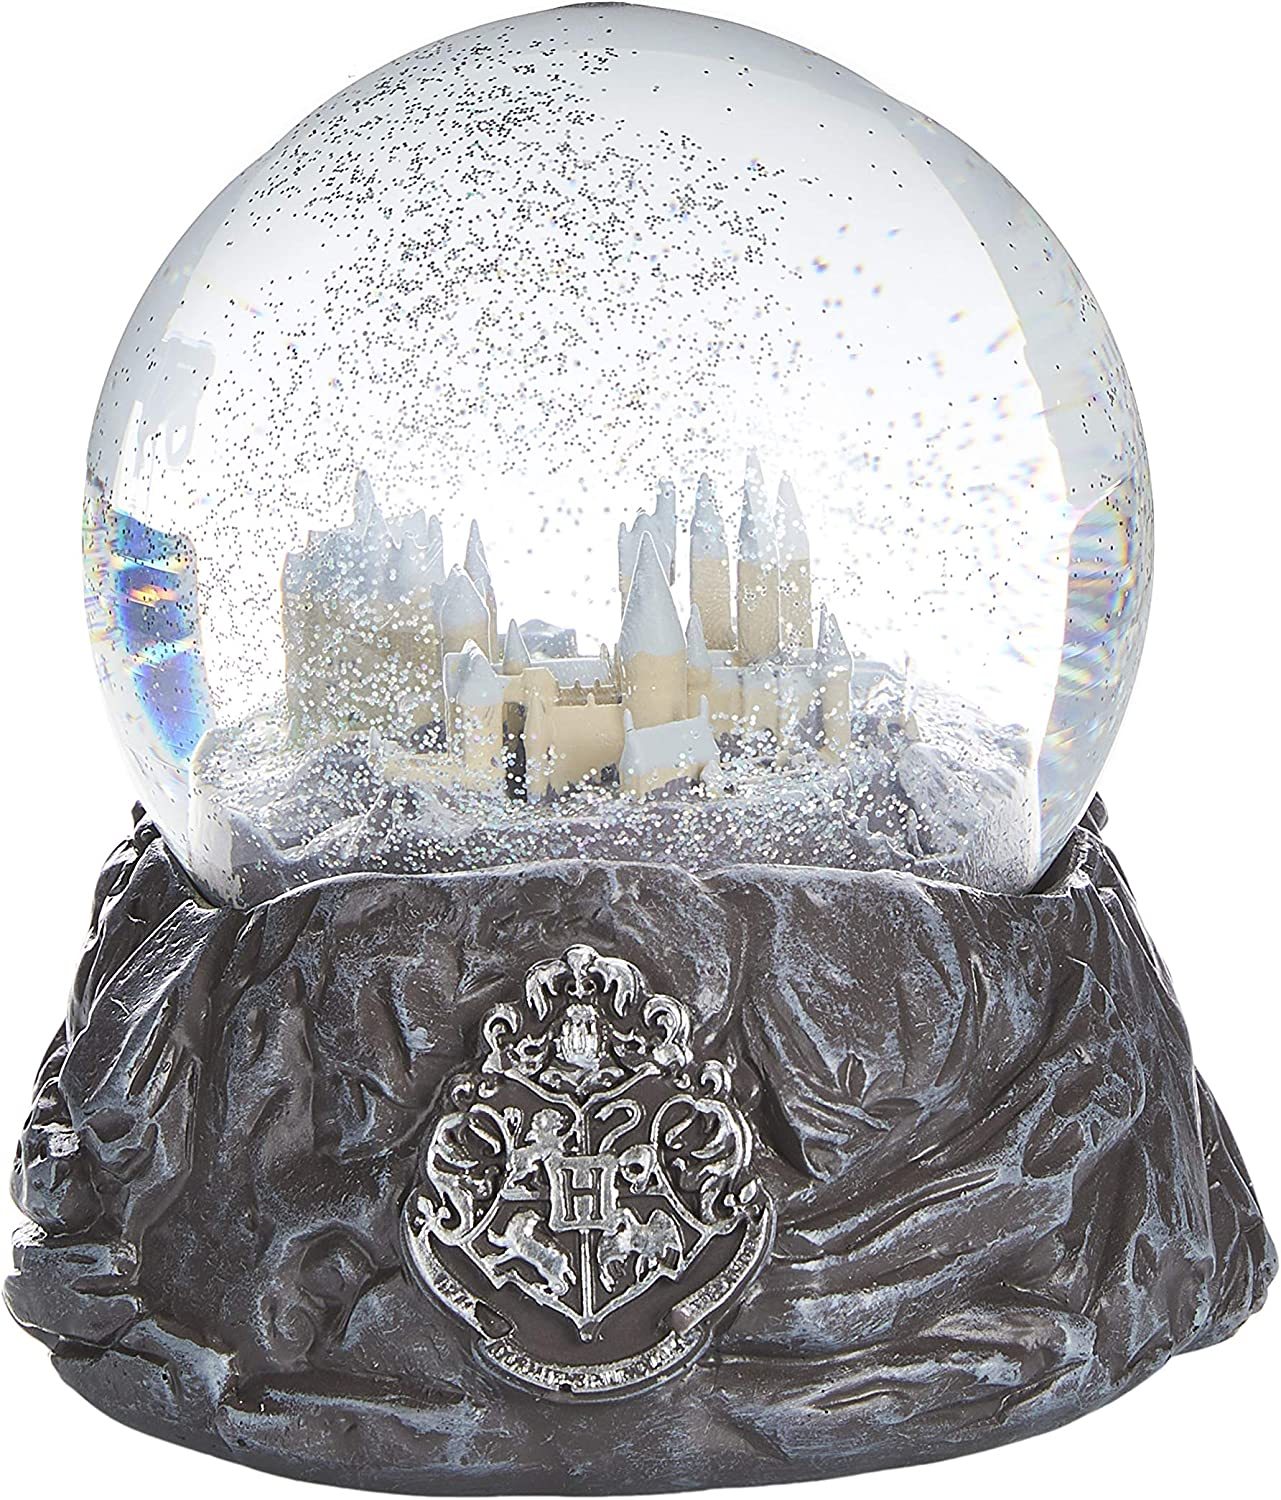 Paladone Hogwarts Snow Globe, Officially Licensed Harry Potter Merchandise